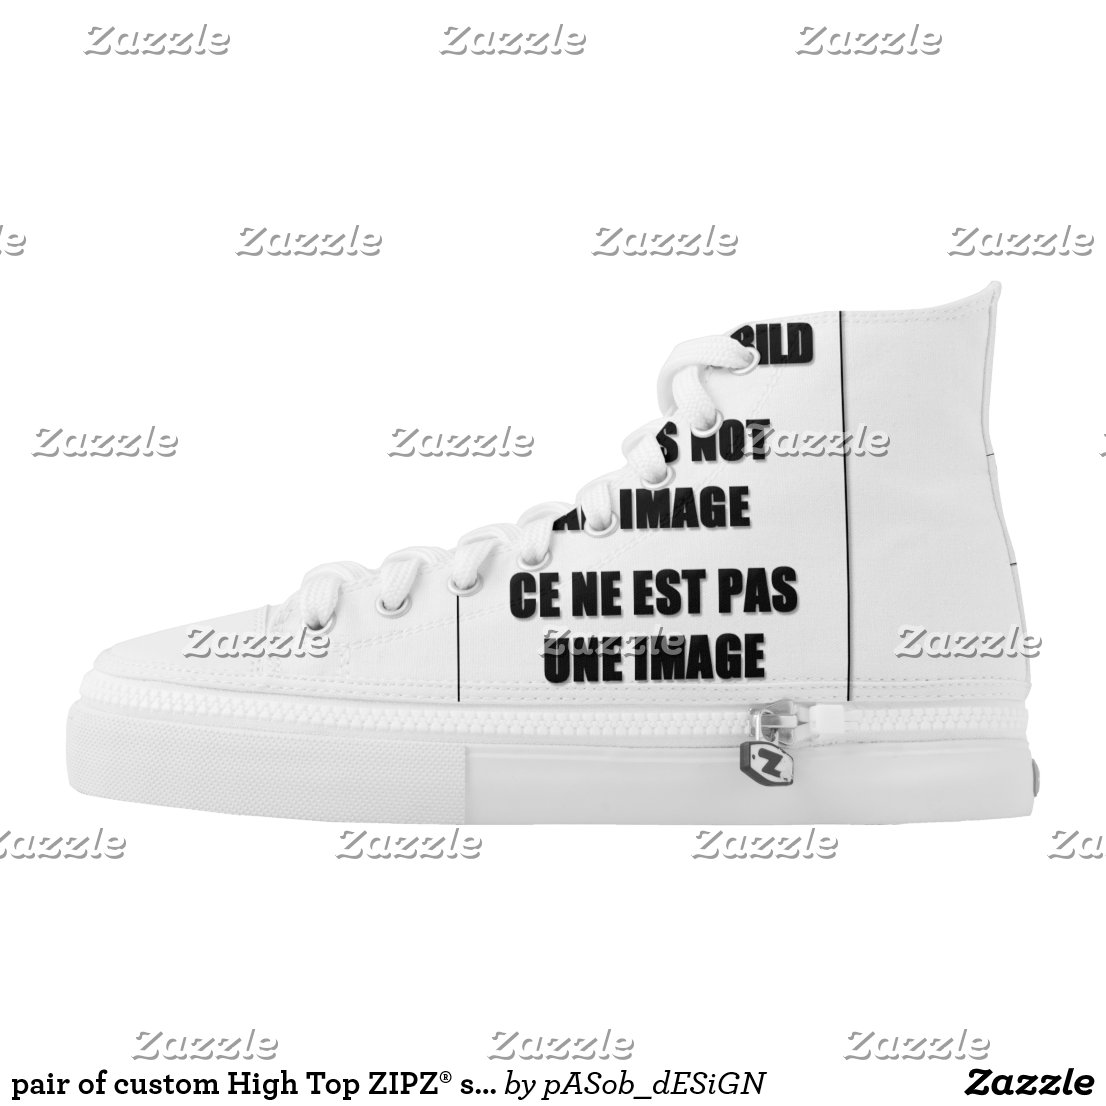 pair of custom High Top ZIPZ® shoes